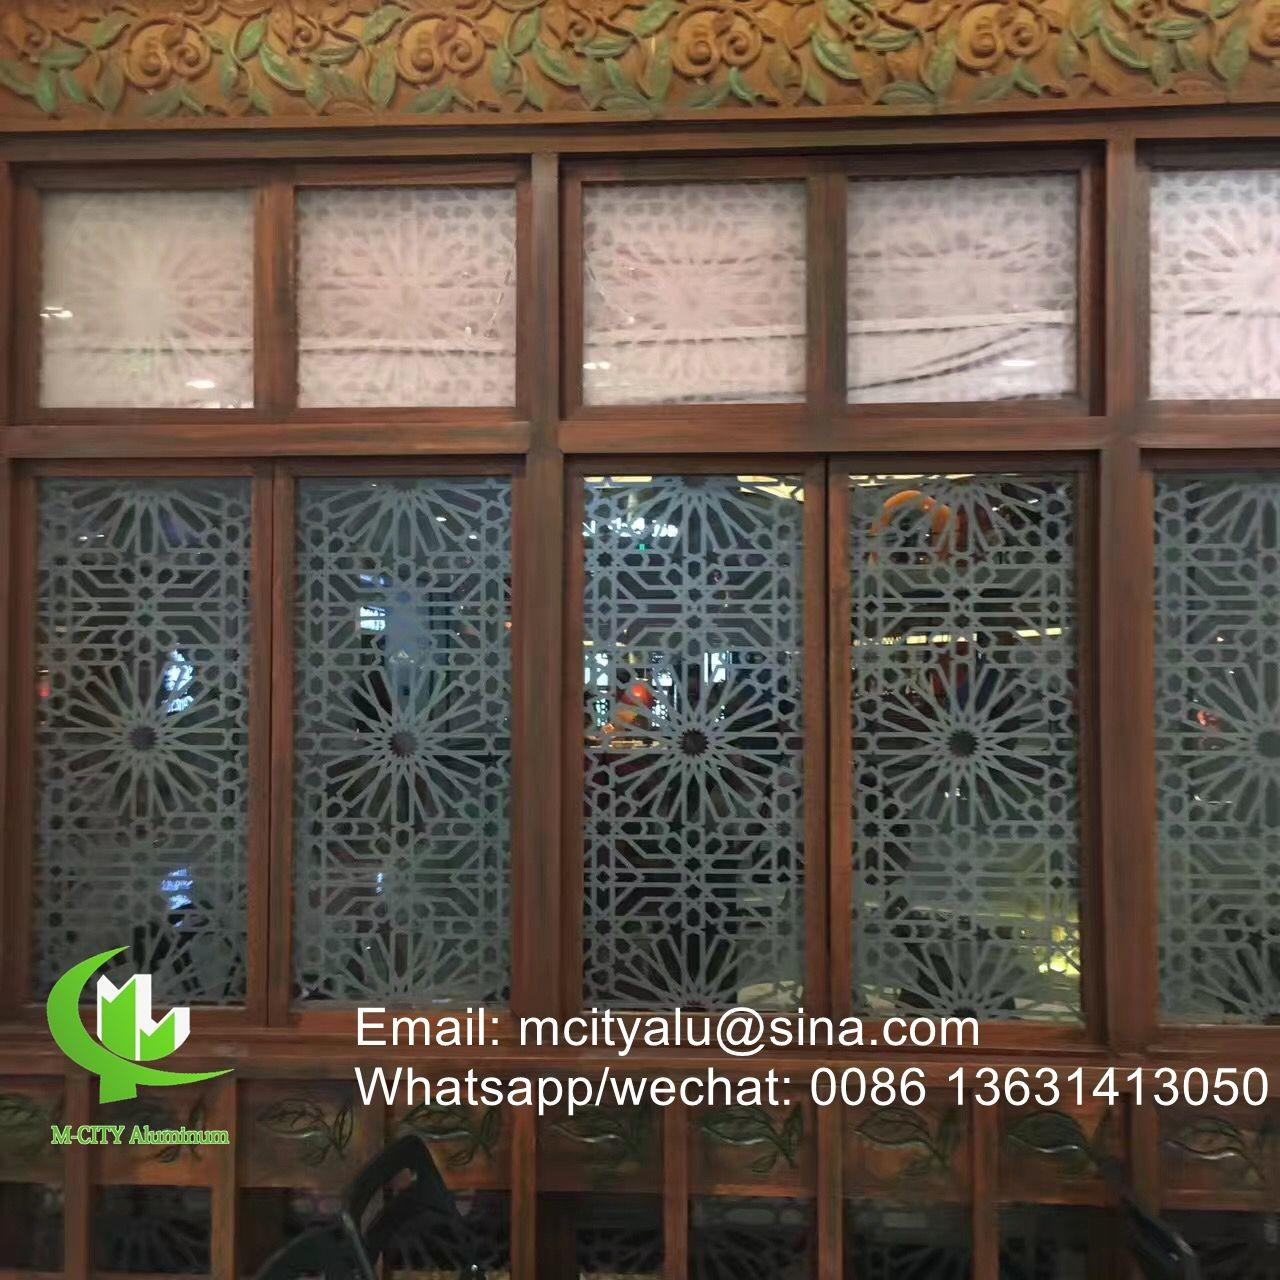 Wholesale Aluminum perforated sheet for window screen room divider fence with 2mm thickness laser cut screen from china suppliers